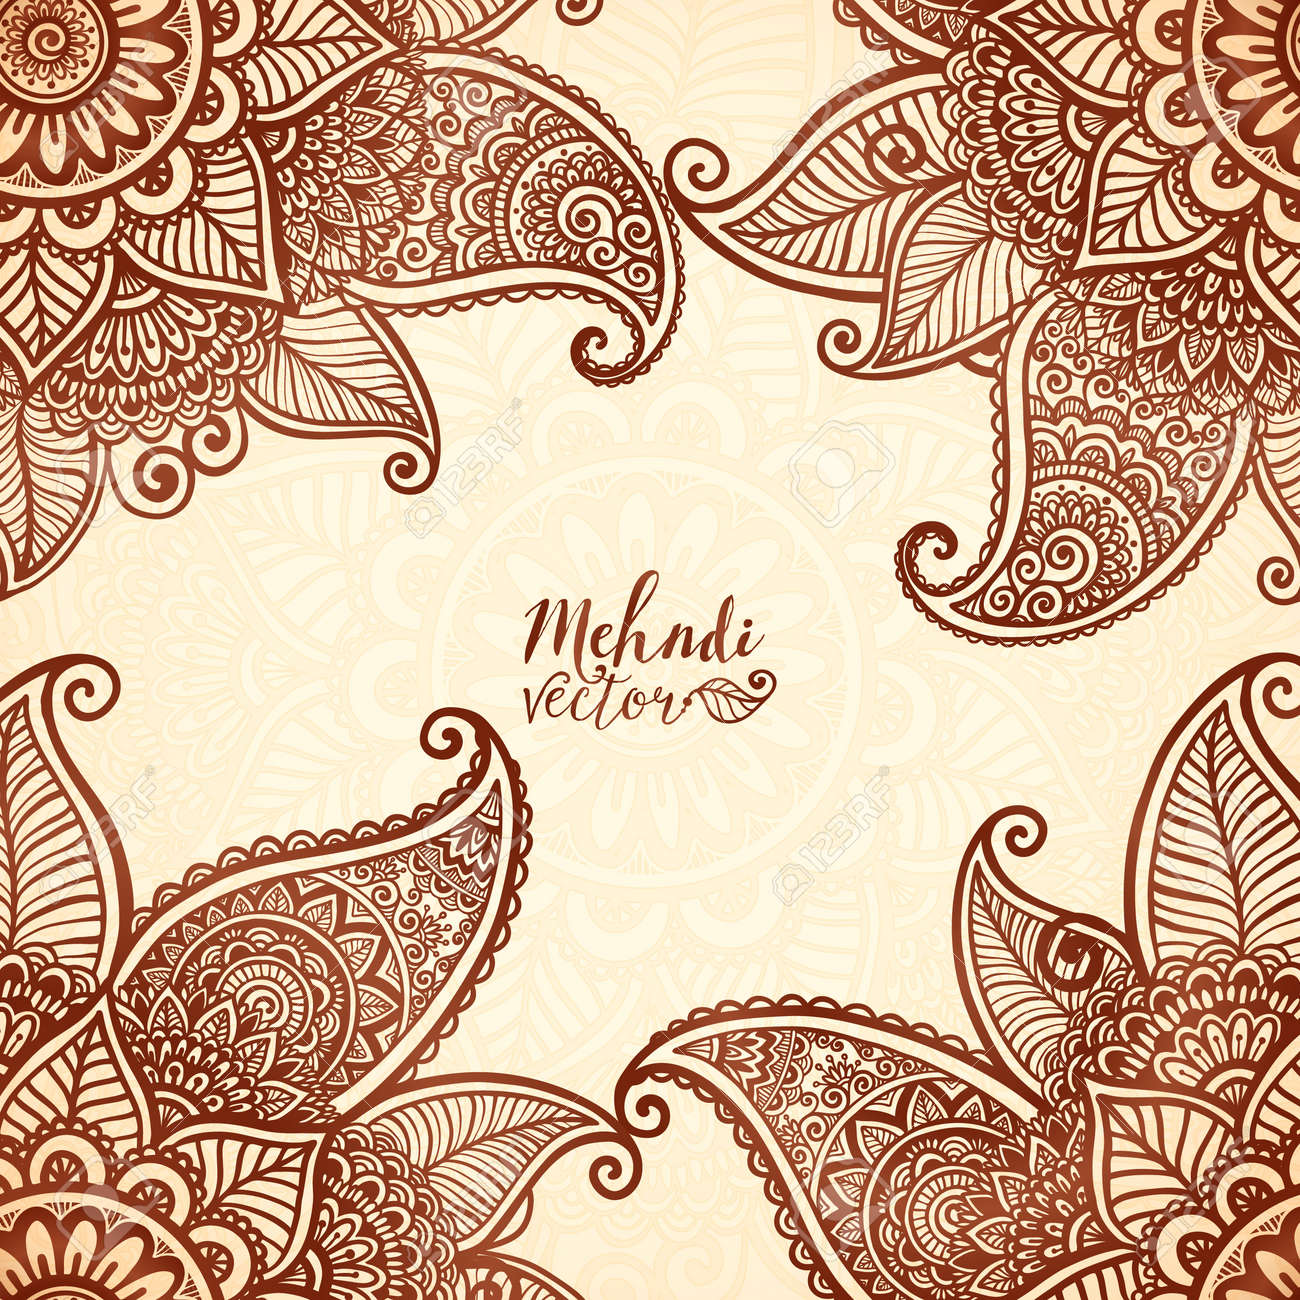 Indian Mehndi Henna Tattoo Style Vector Card Background Royalty Free